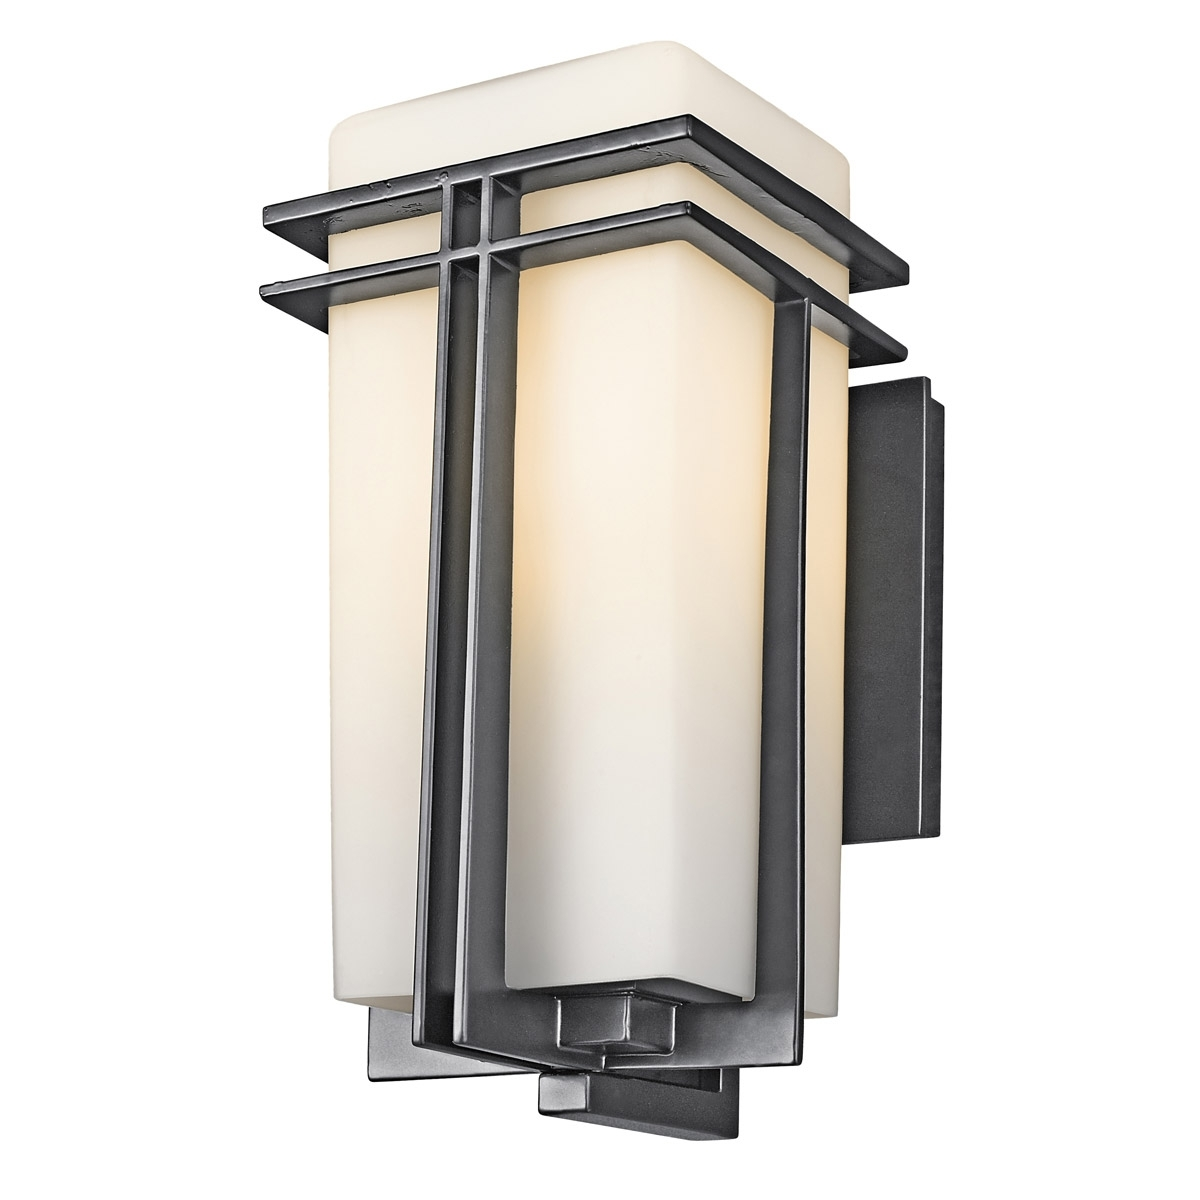 Transitional Outdoor Wall Lighting Pertaining To Well Known 49201Bk Tremillo Outdoor Wall Fixture (View 10 of 20)